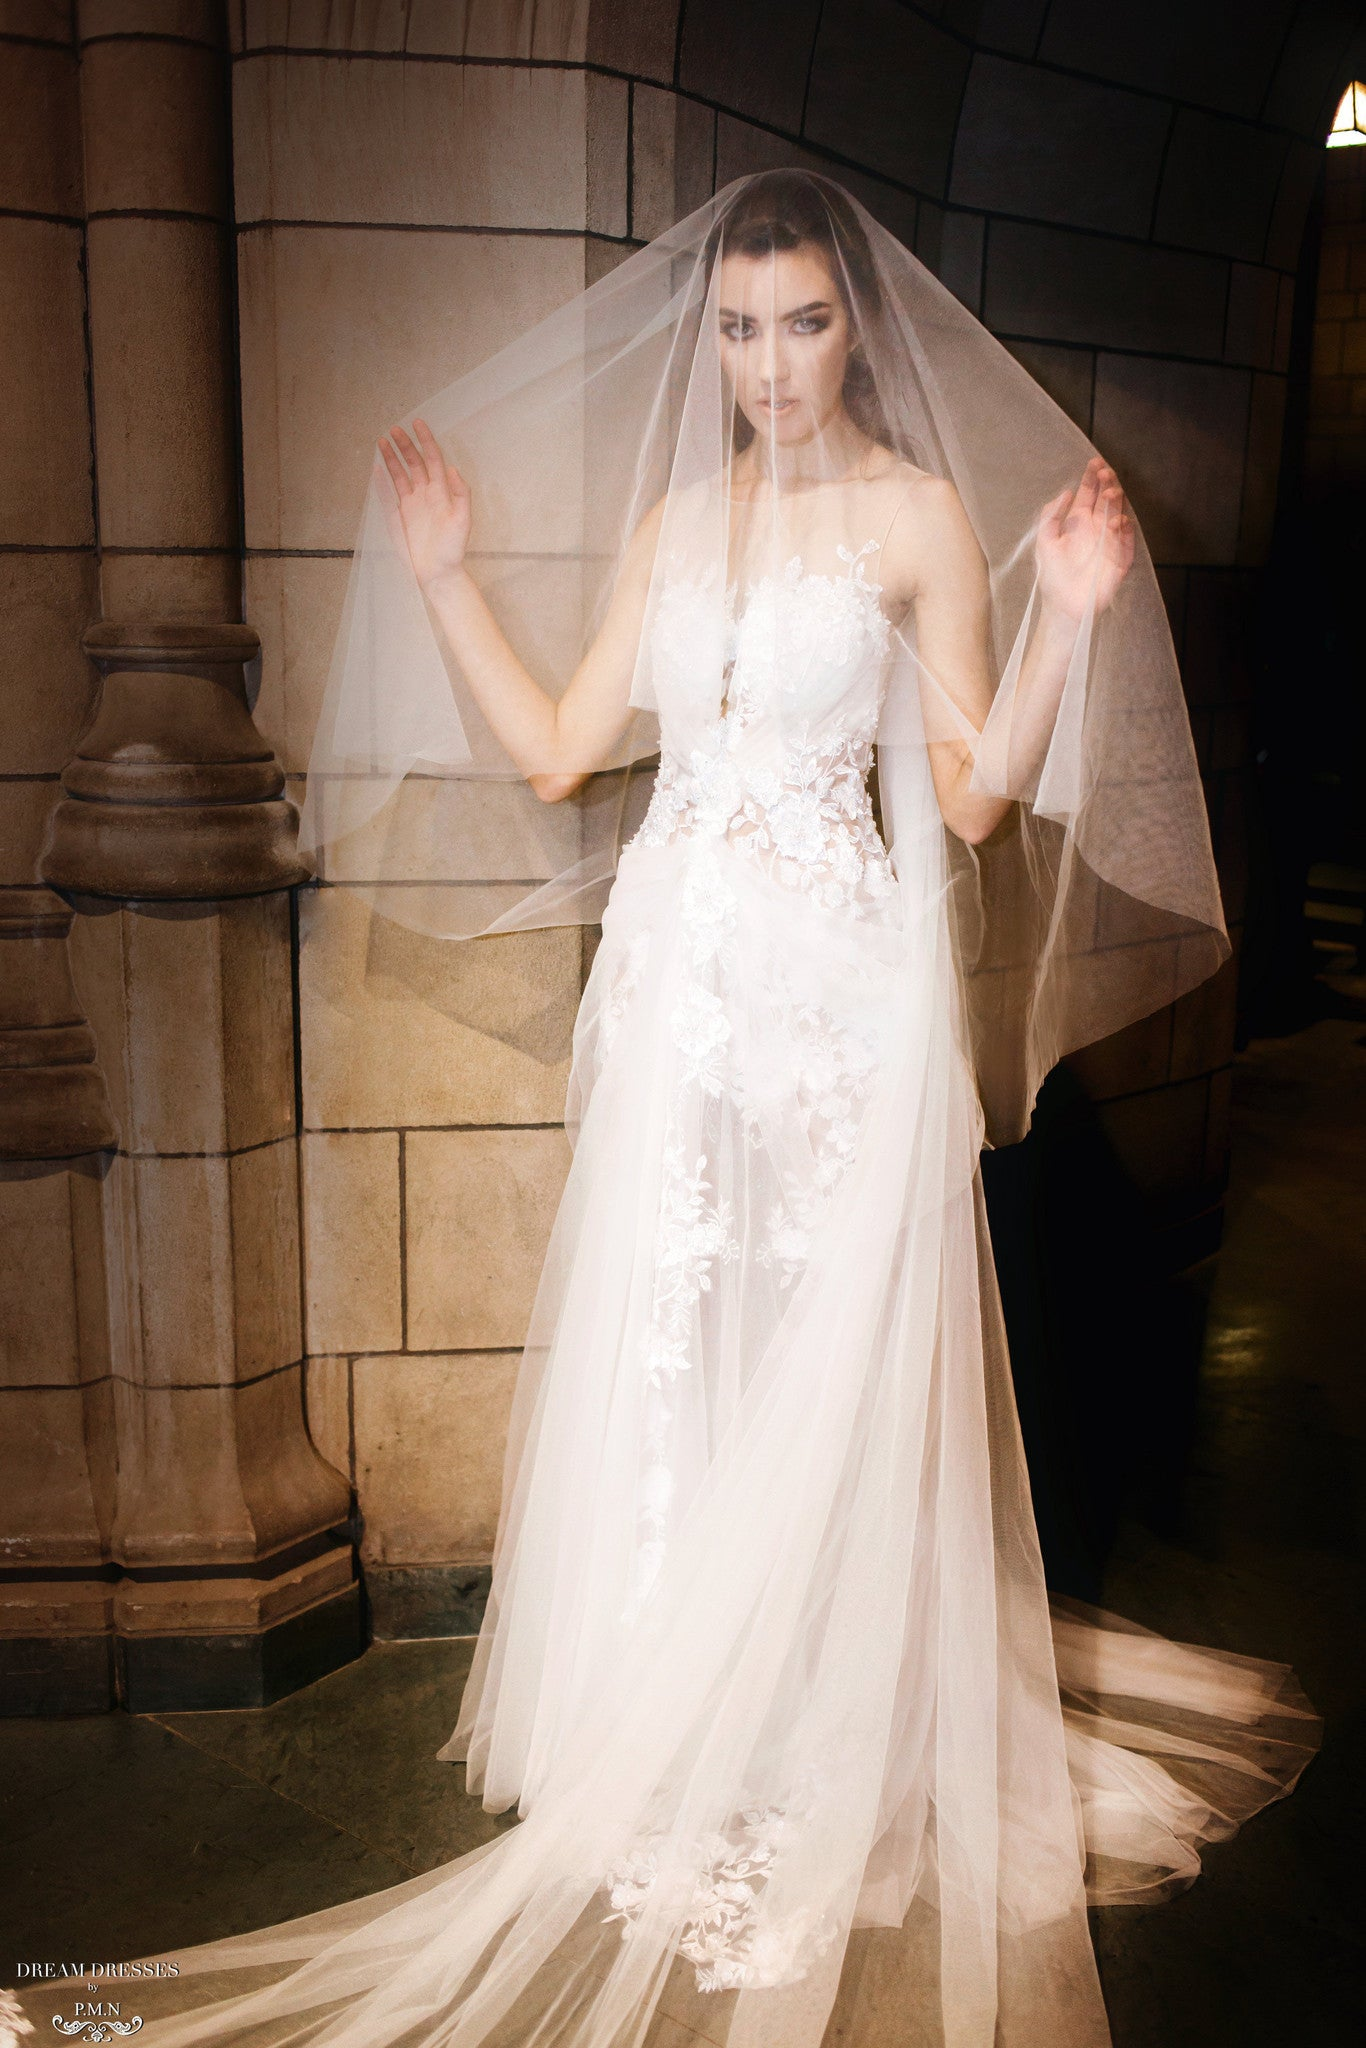 Cathedral Drop Veil with Floral Lace Appliqué(#Cécile)